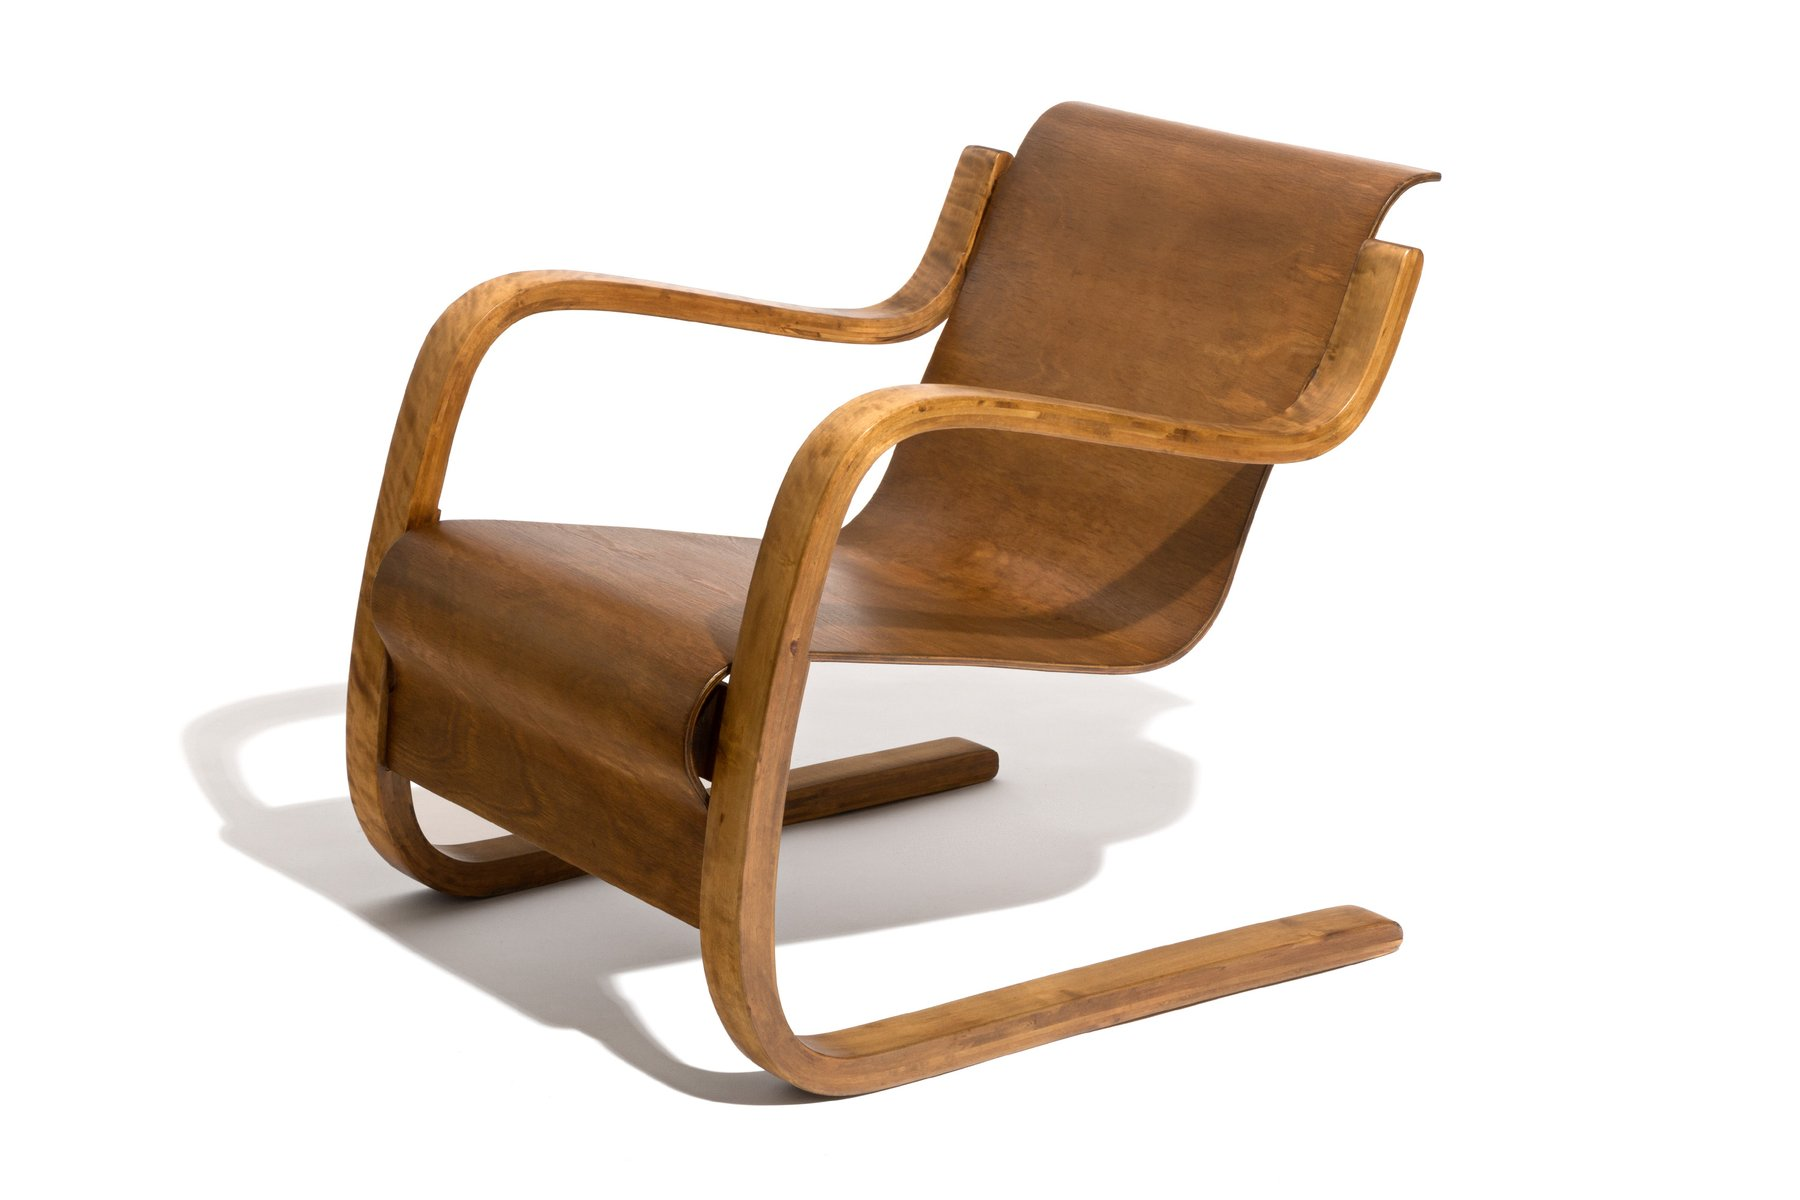 Cantilever model 31 42 chair by alvar aalto for o y for Alvar aalto chaise